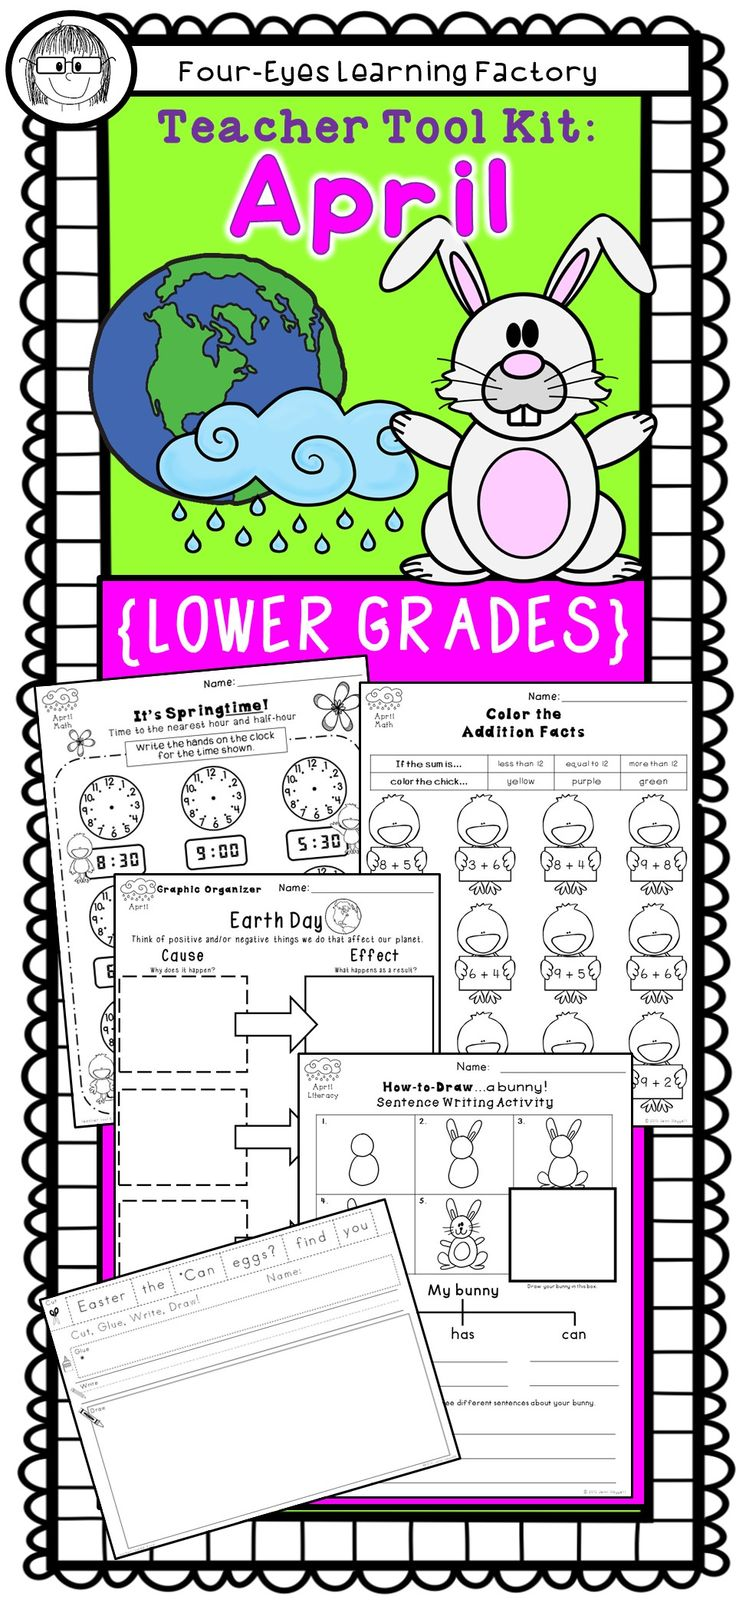 Tons of fun teacher tools for the whole month of April!  Celebrate Spring, Easter and Earth Day (plus some of the lesser known holidays in April) with these fun and educational activities for literacy, math… and more! This Teacher Tool Kit is a perfect addition to your collection of holiday resources. Created with Common Core in mind, each math and literacy tool is designed to reinforce fundamental skills in the lower grades.